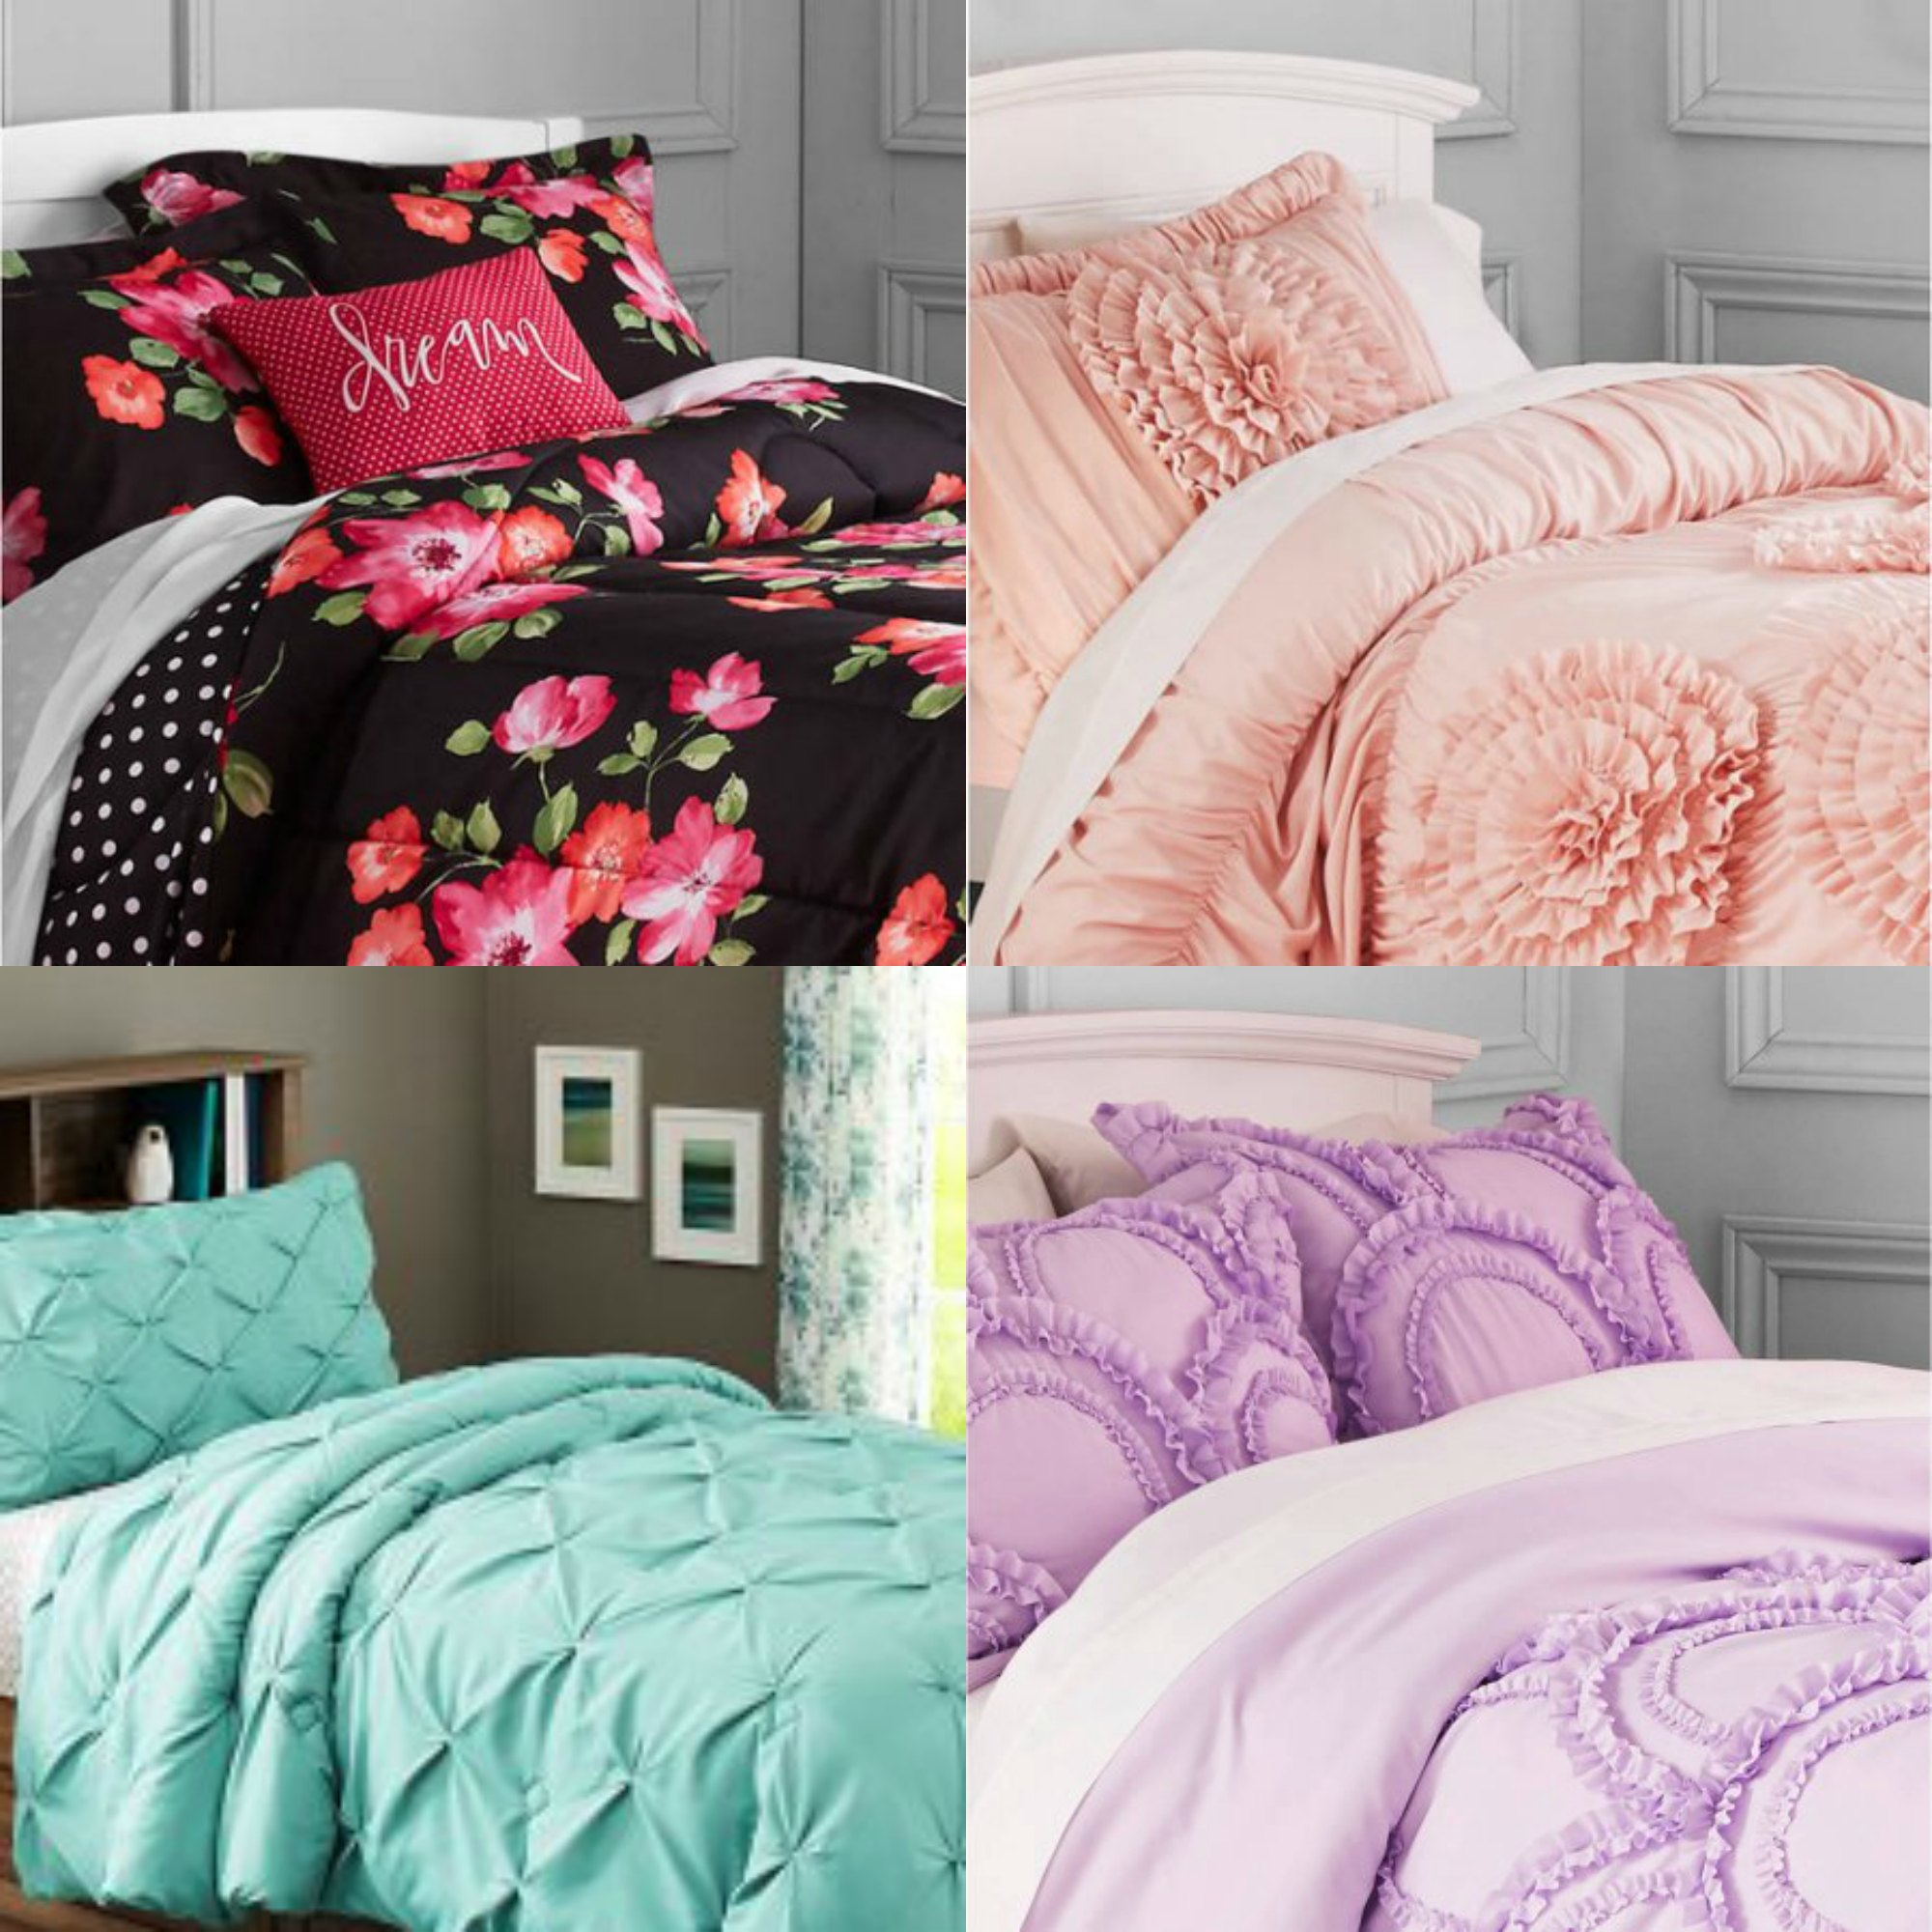 Affordable Bedding Options from Walmart